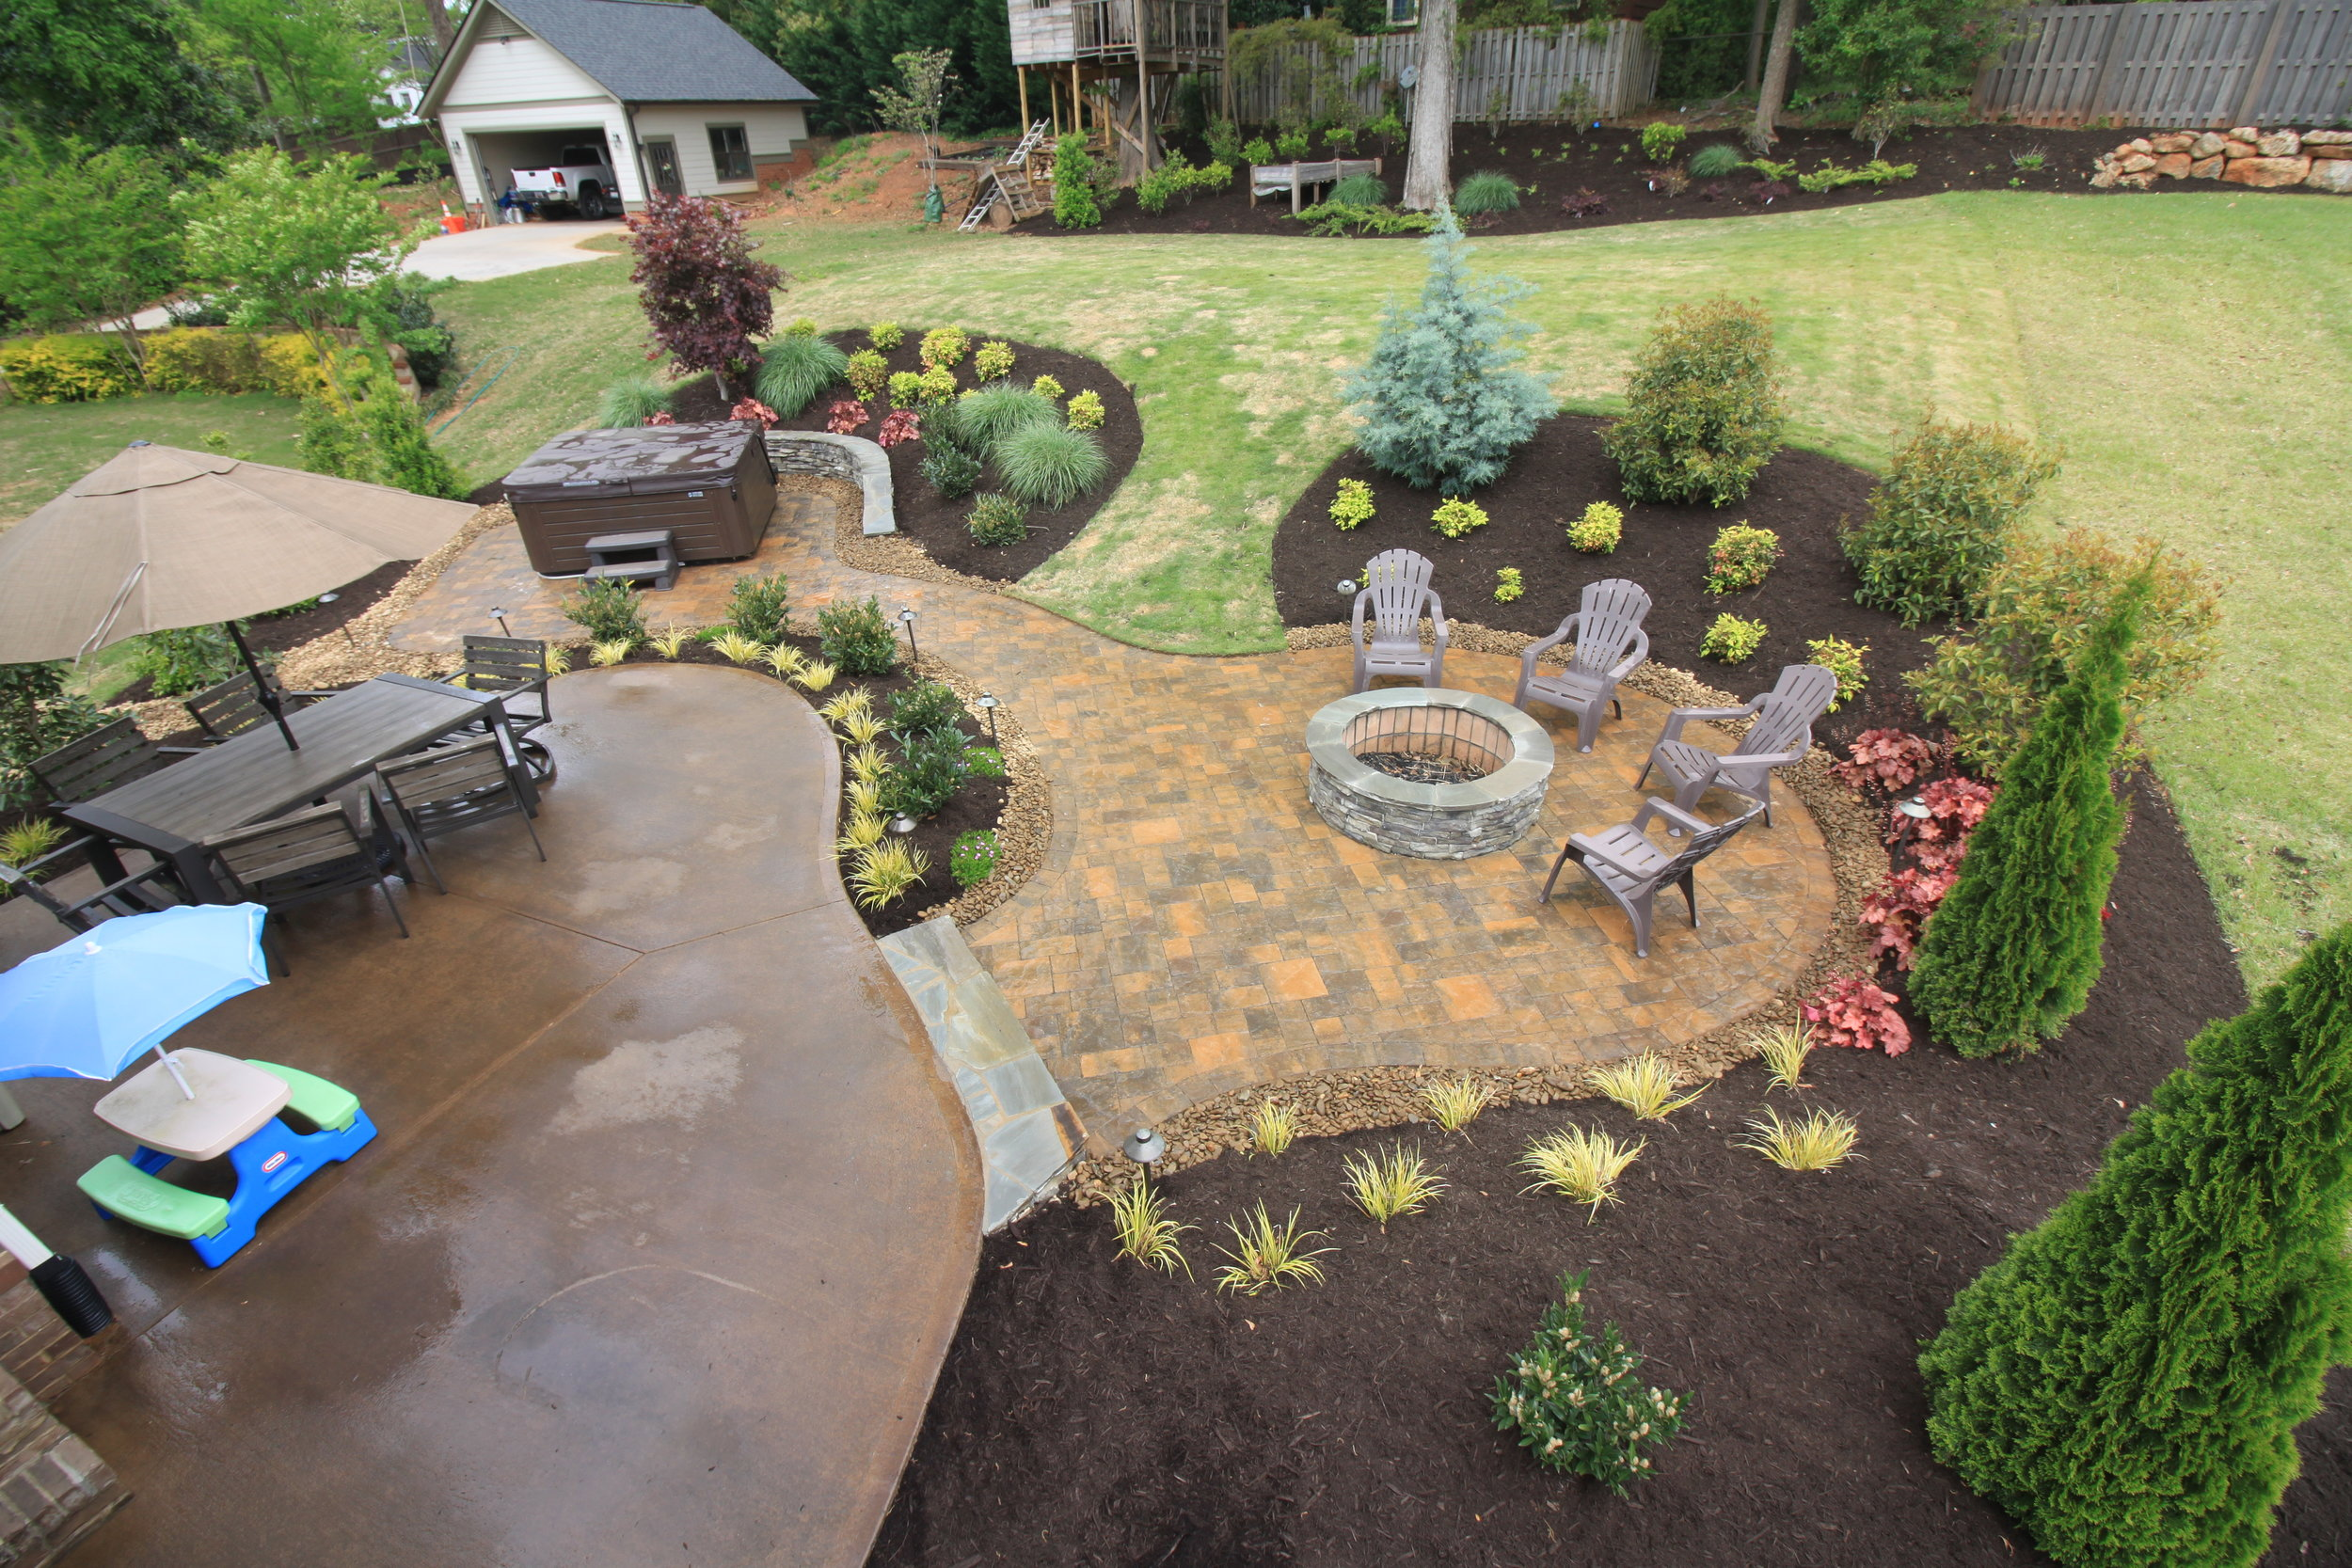 North_Main_Greenville_Backyard_Patio_Firepit.JPG